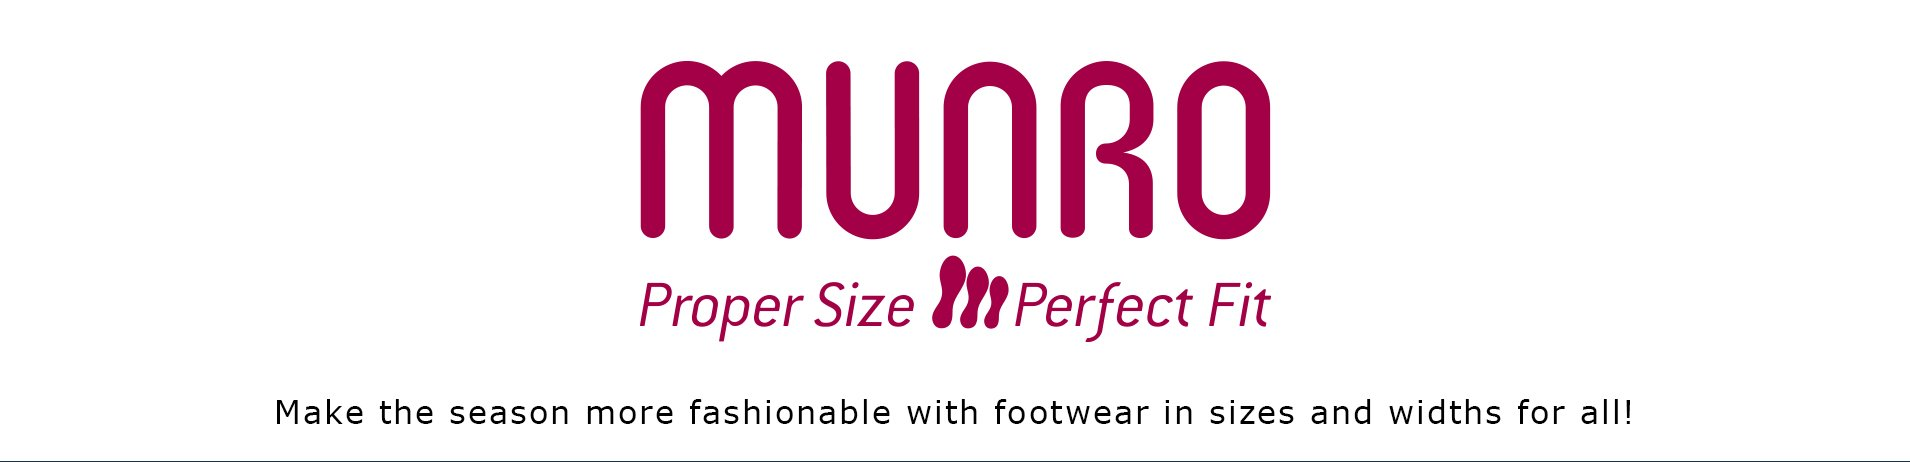 Shop Munro Lookbook